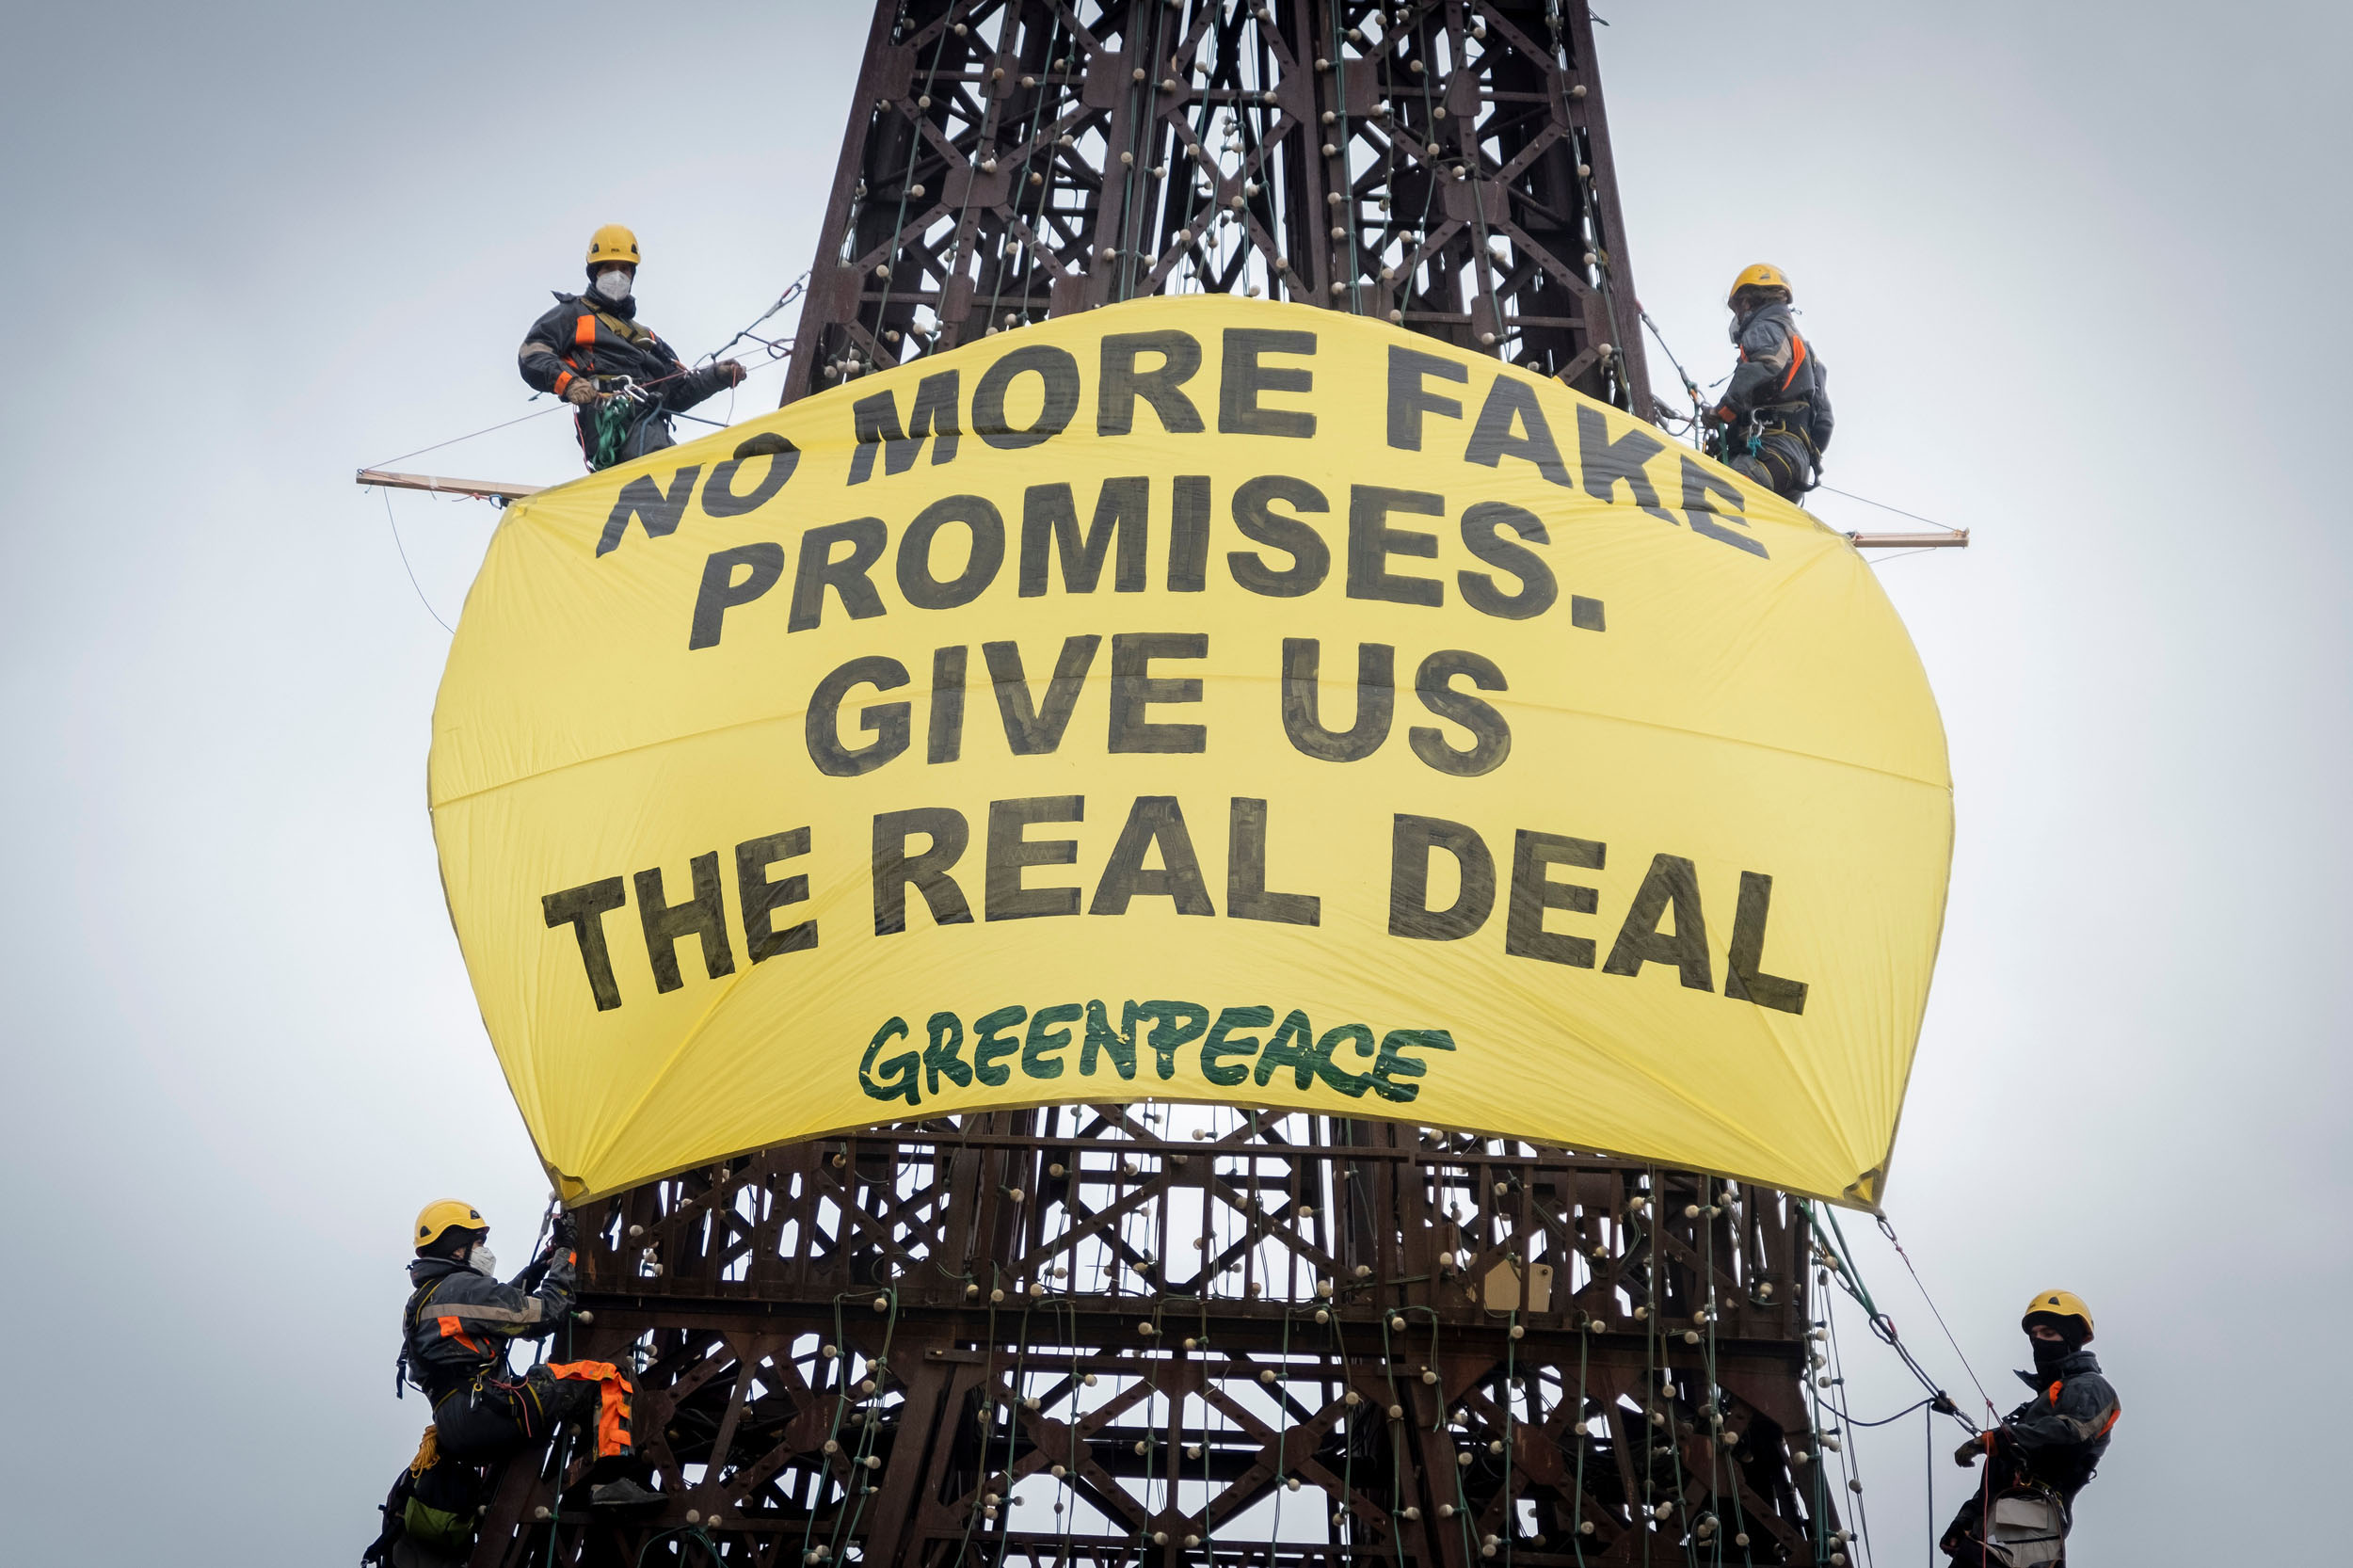 "Greenpeace climbers in masks and helmets hang from a dark latticed metal structure, displaying a large yellow banner that reads ""No more fake promises. Give us the real deal."""